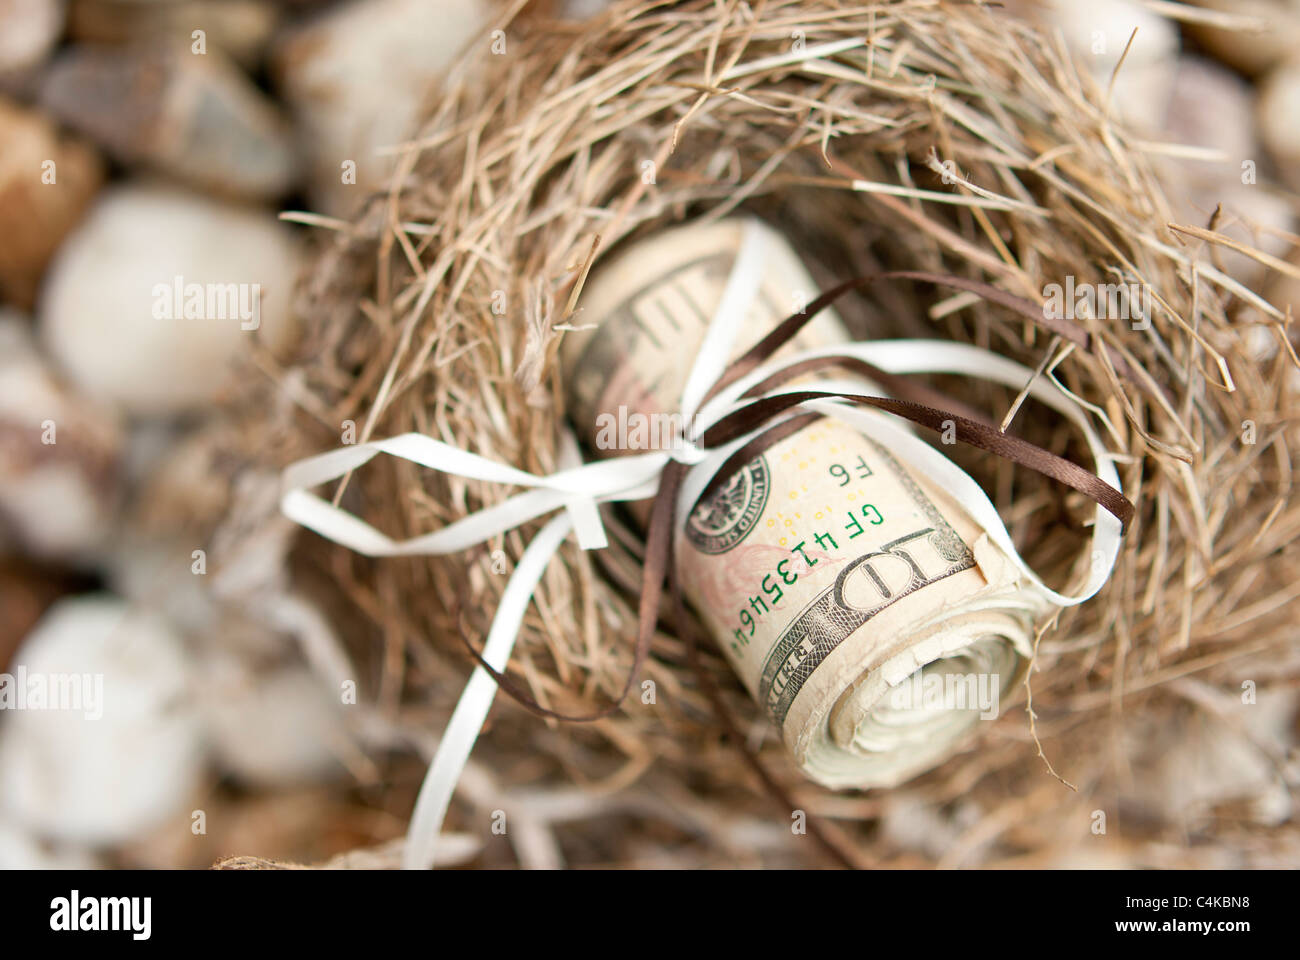 Roll of money in a nest - Stock Image